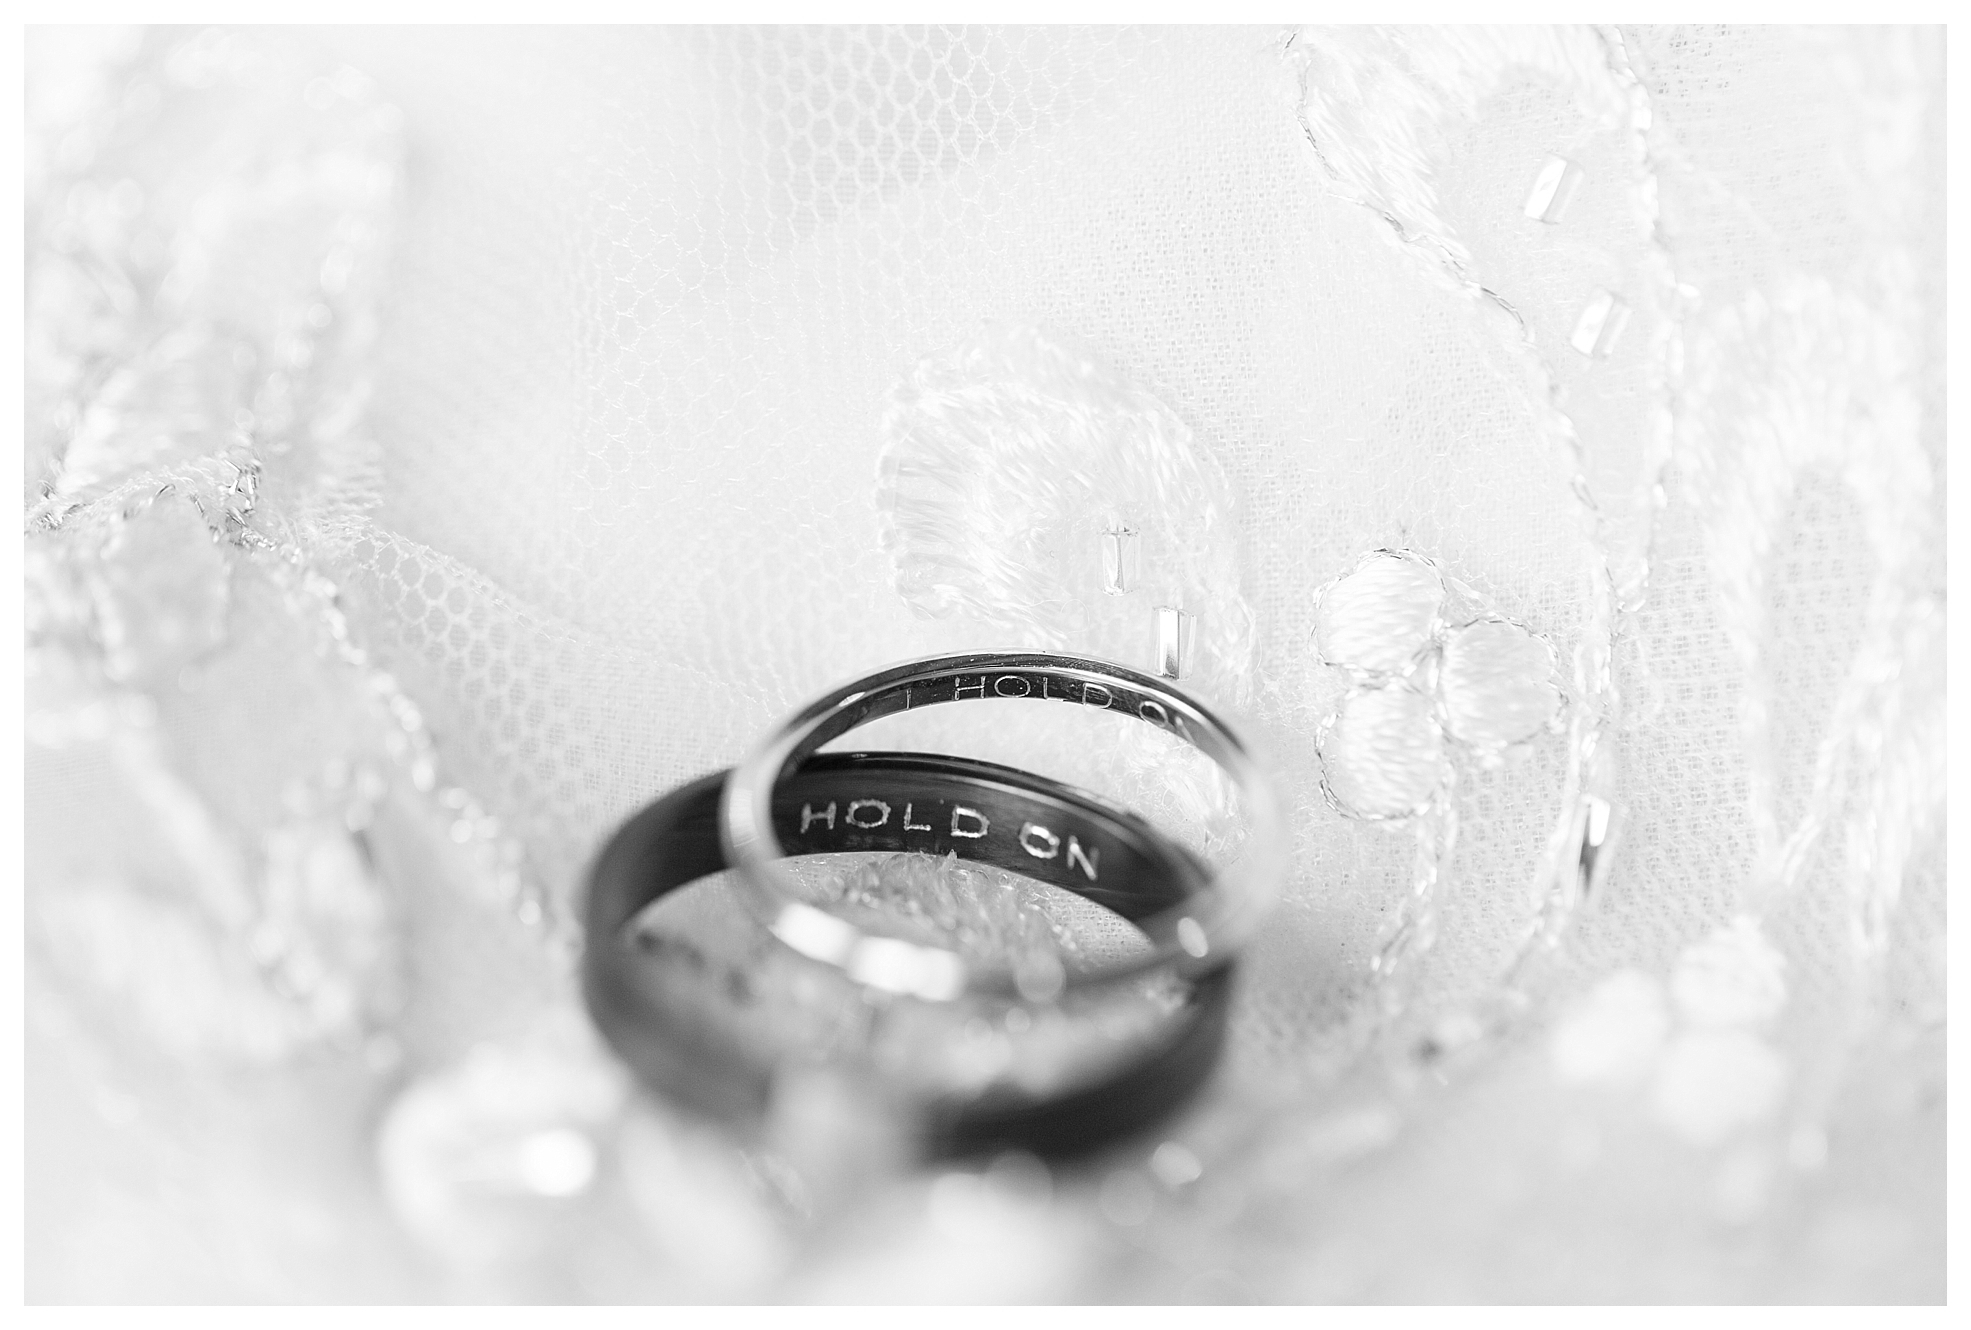 """I hold on"" was engraved in their rings, and was also their first dance song!"